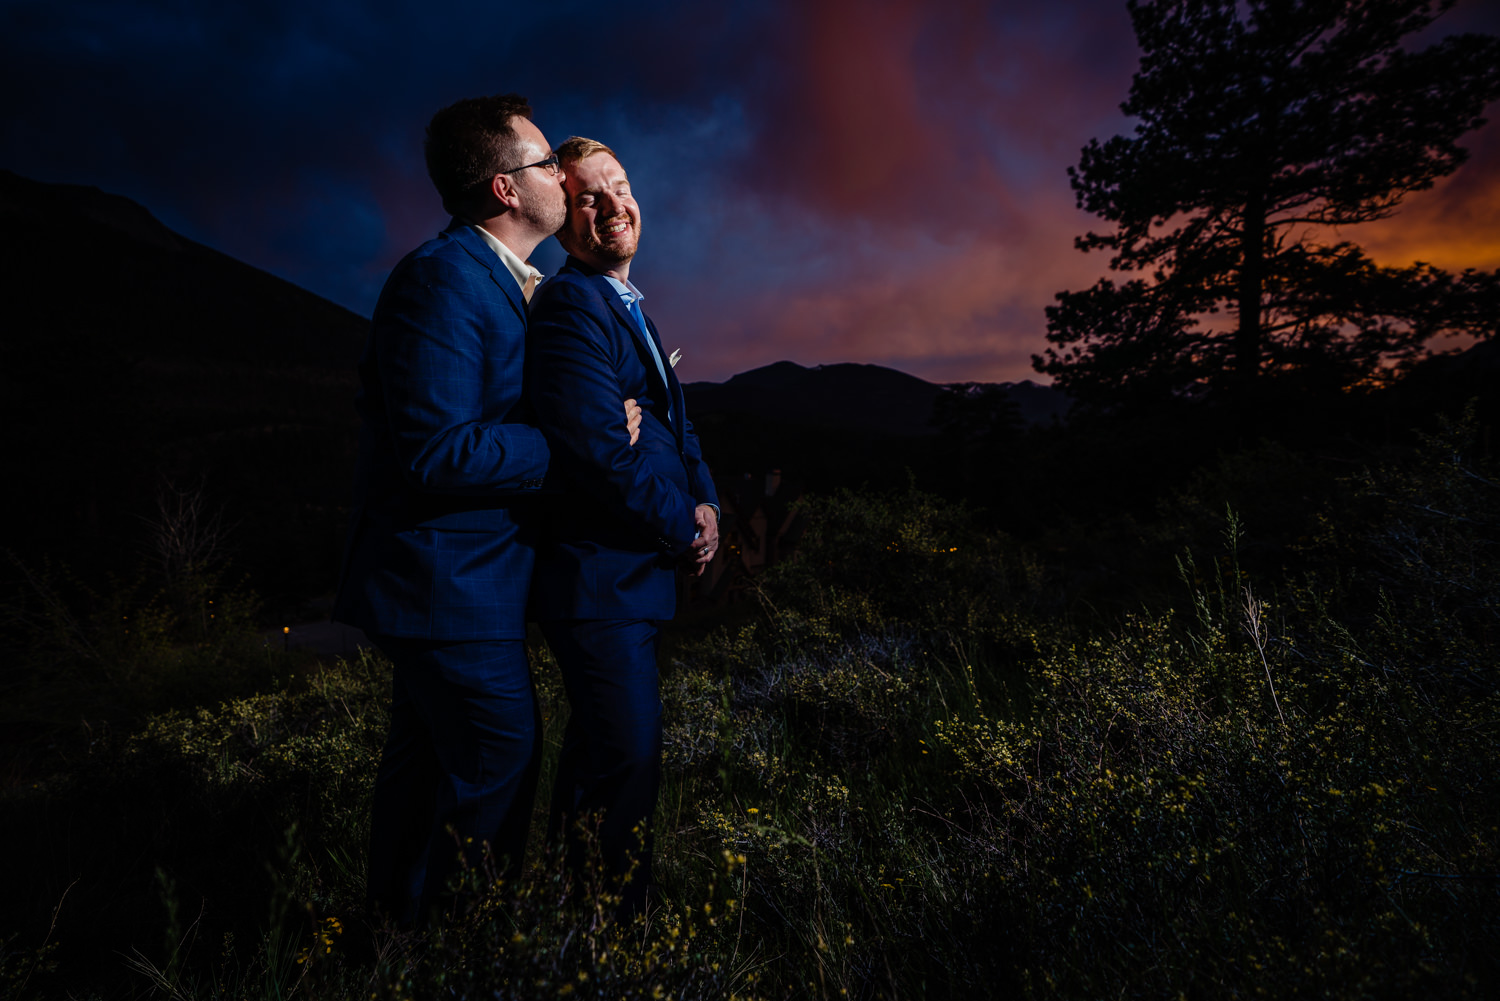 Della Terra Chateau Wedding by Estes Park Wedding Photographer JMGant Photography.